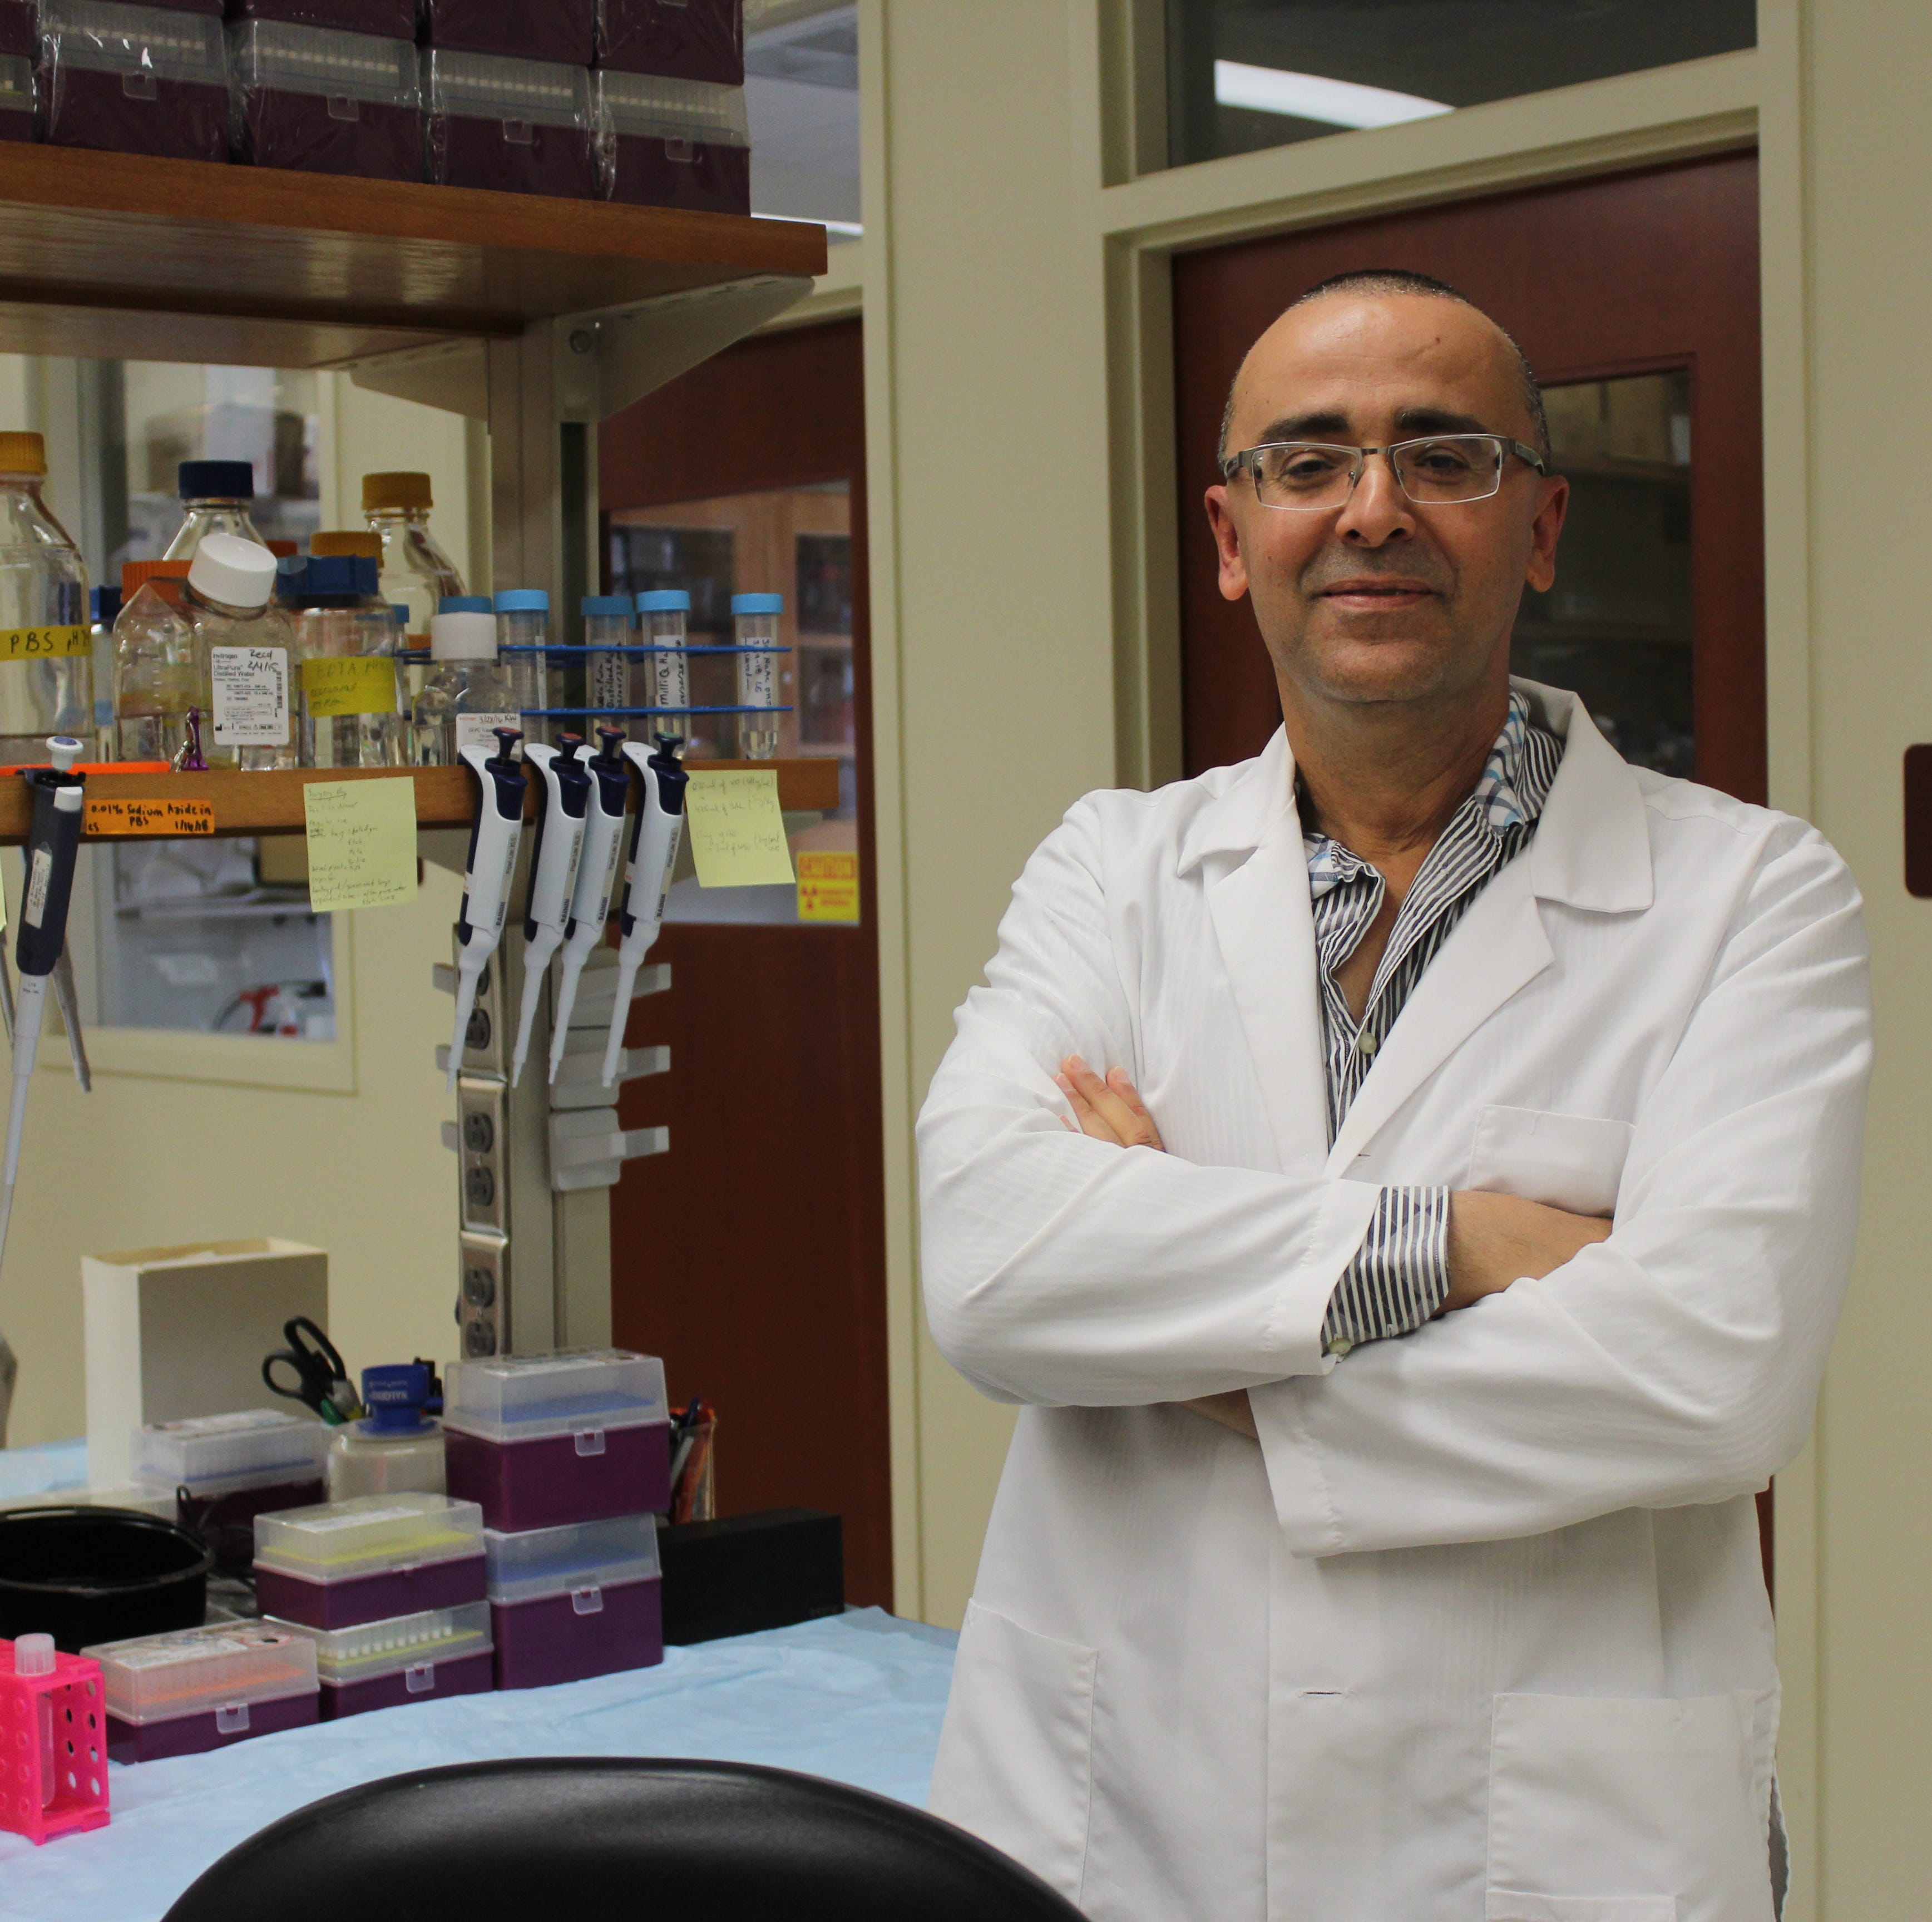 FSU researcher investigates new fast-acting drug to treat depression